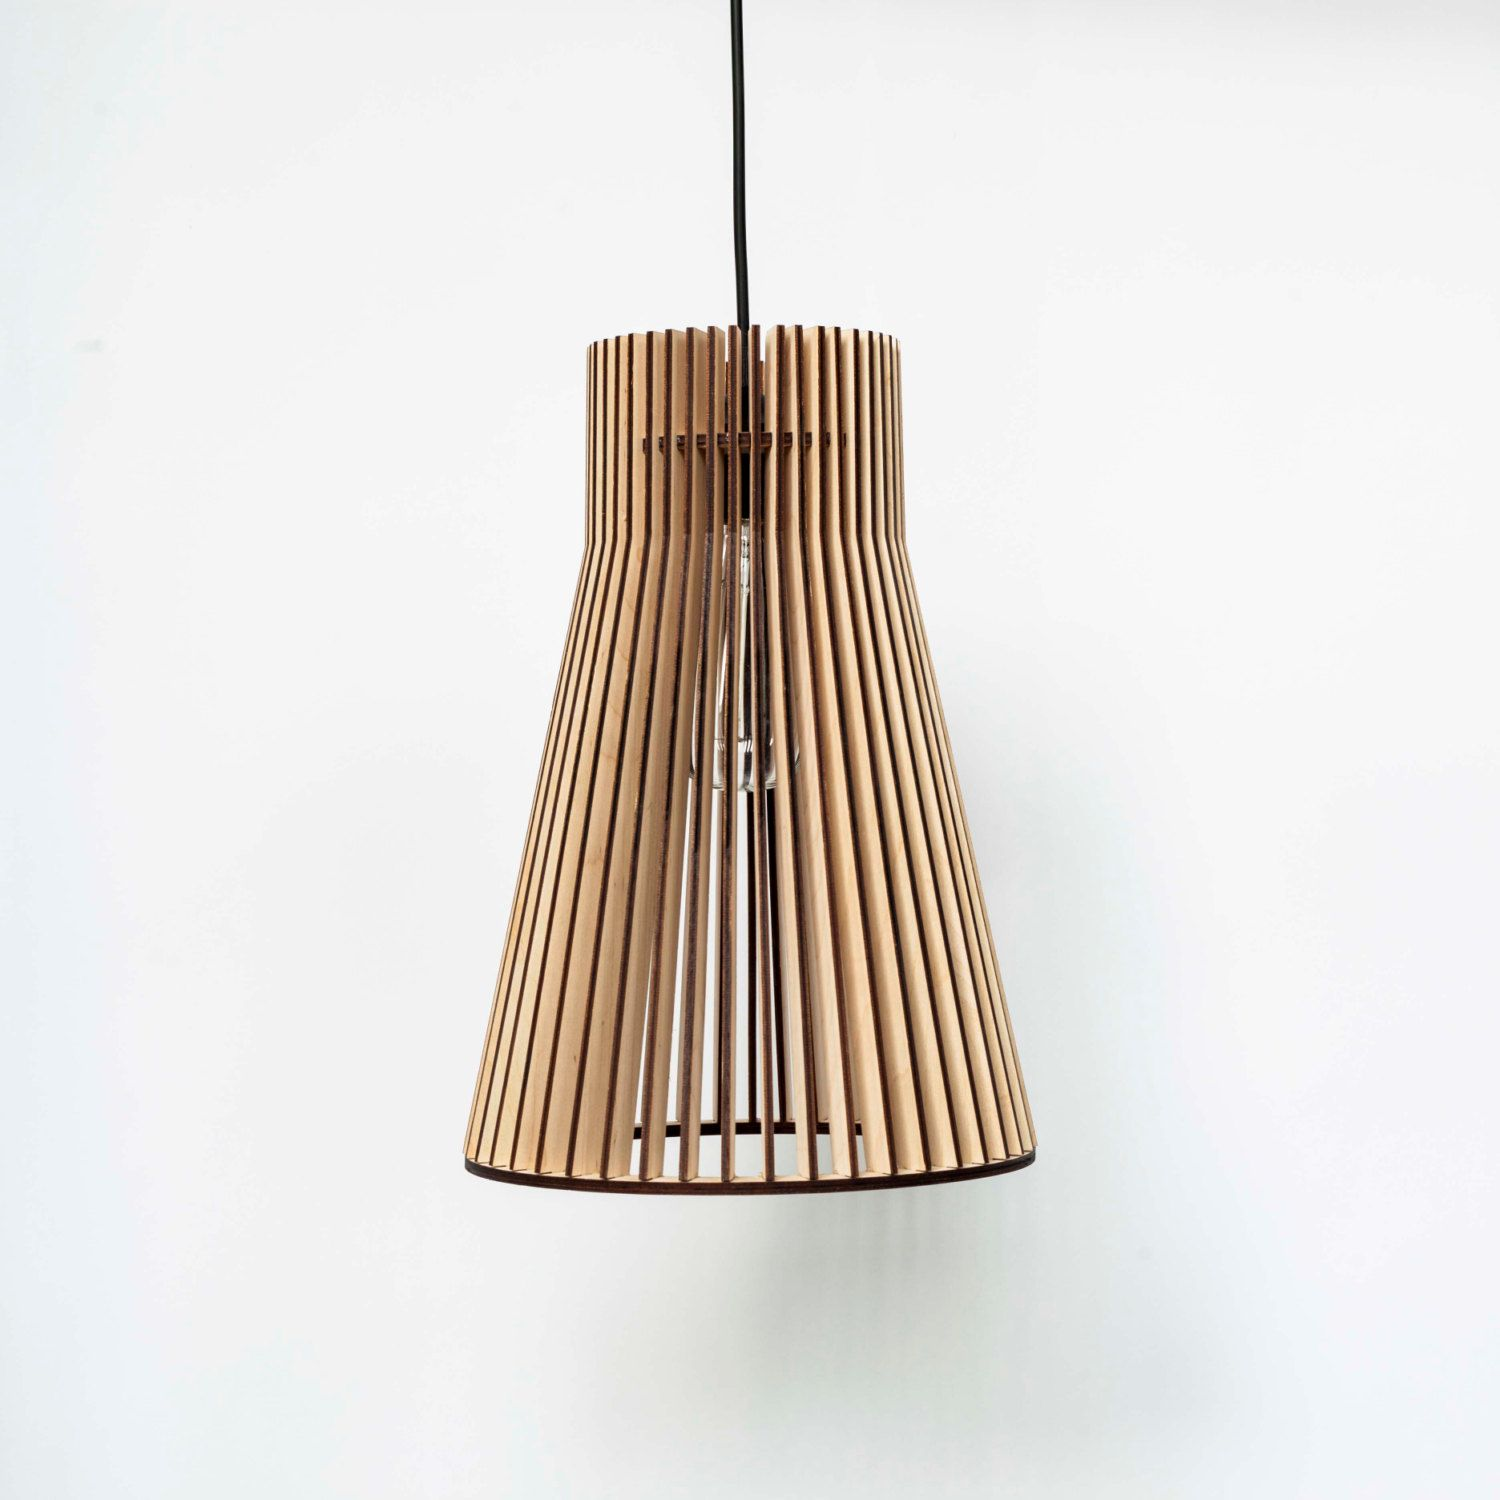 laser cut lamp - Google-søgning | Laser | Pinterest | Laser cut lamps